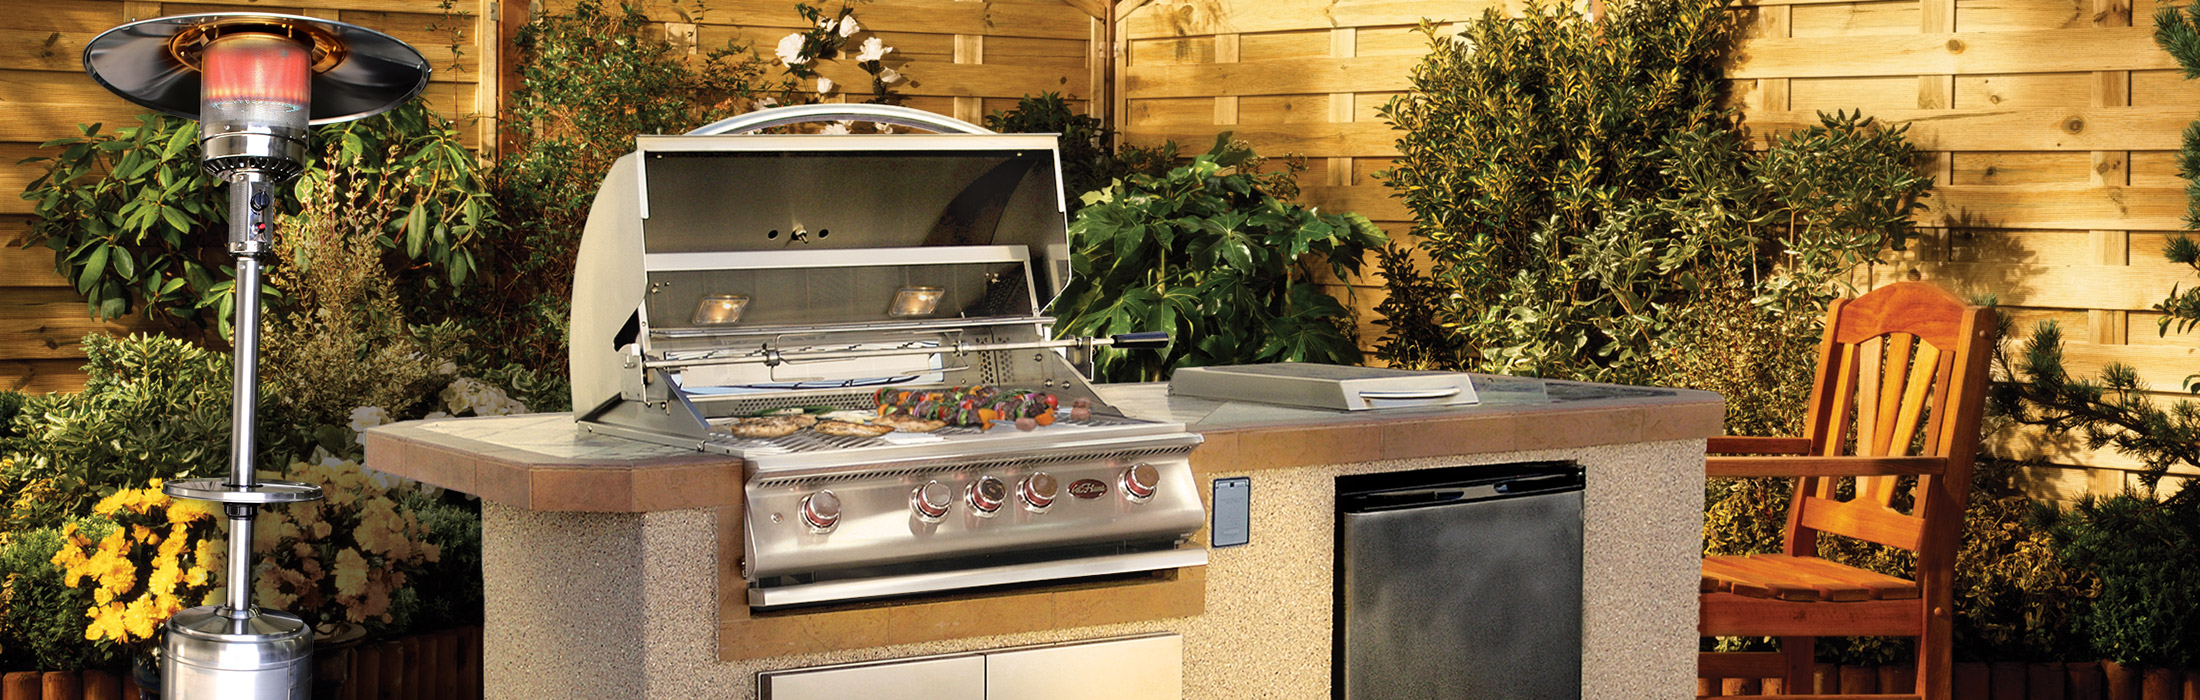 propane kitchen stove hook up Camp chef is your source for the best camping grills, stoves, smokers, and everything outdoor cooking let us show you a better way to cook outdoors.